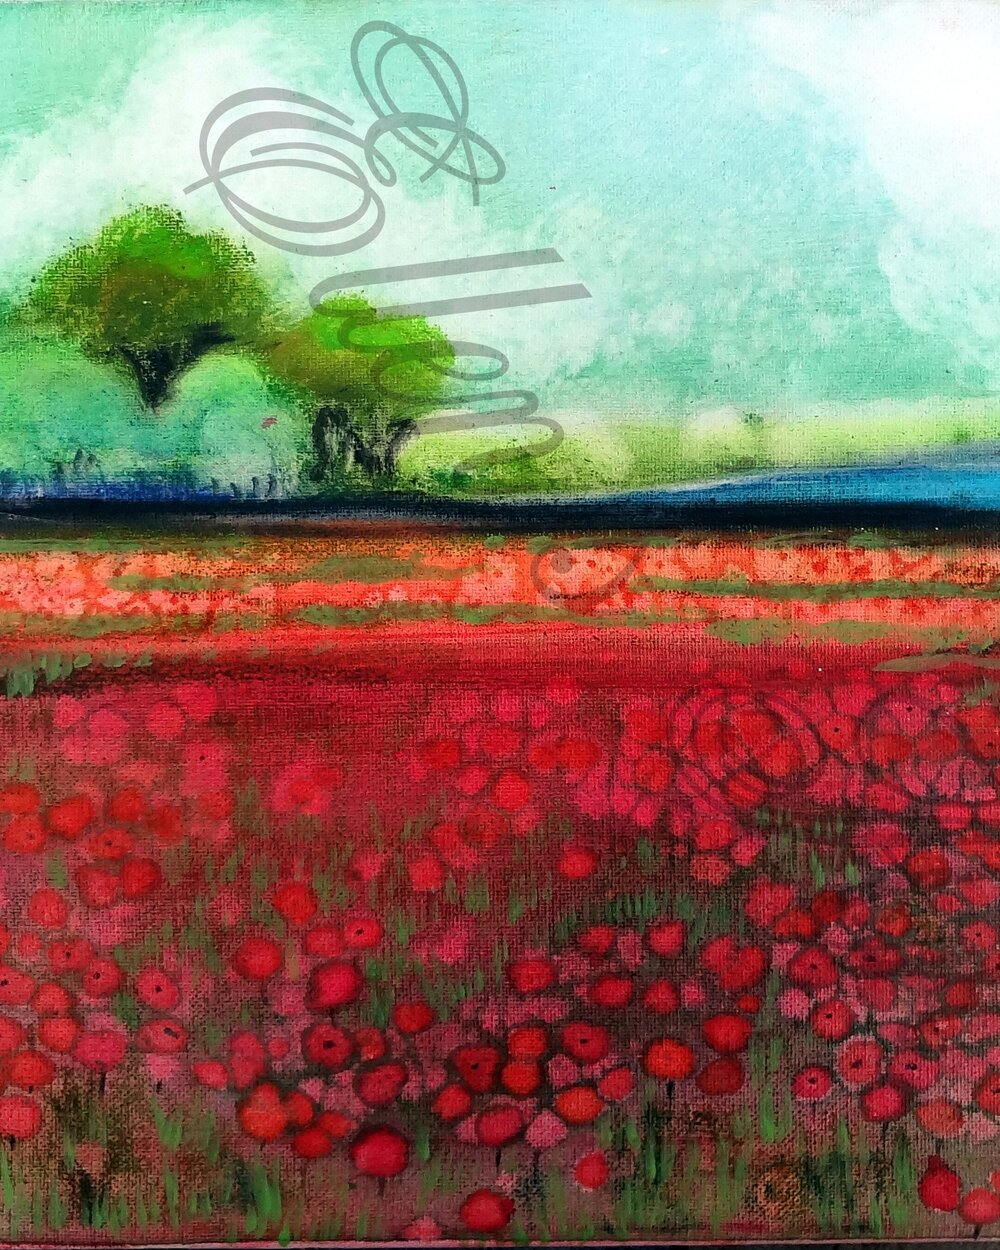 poppy field watermark.jpg